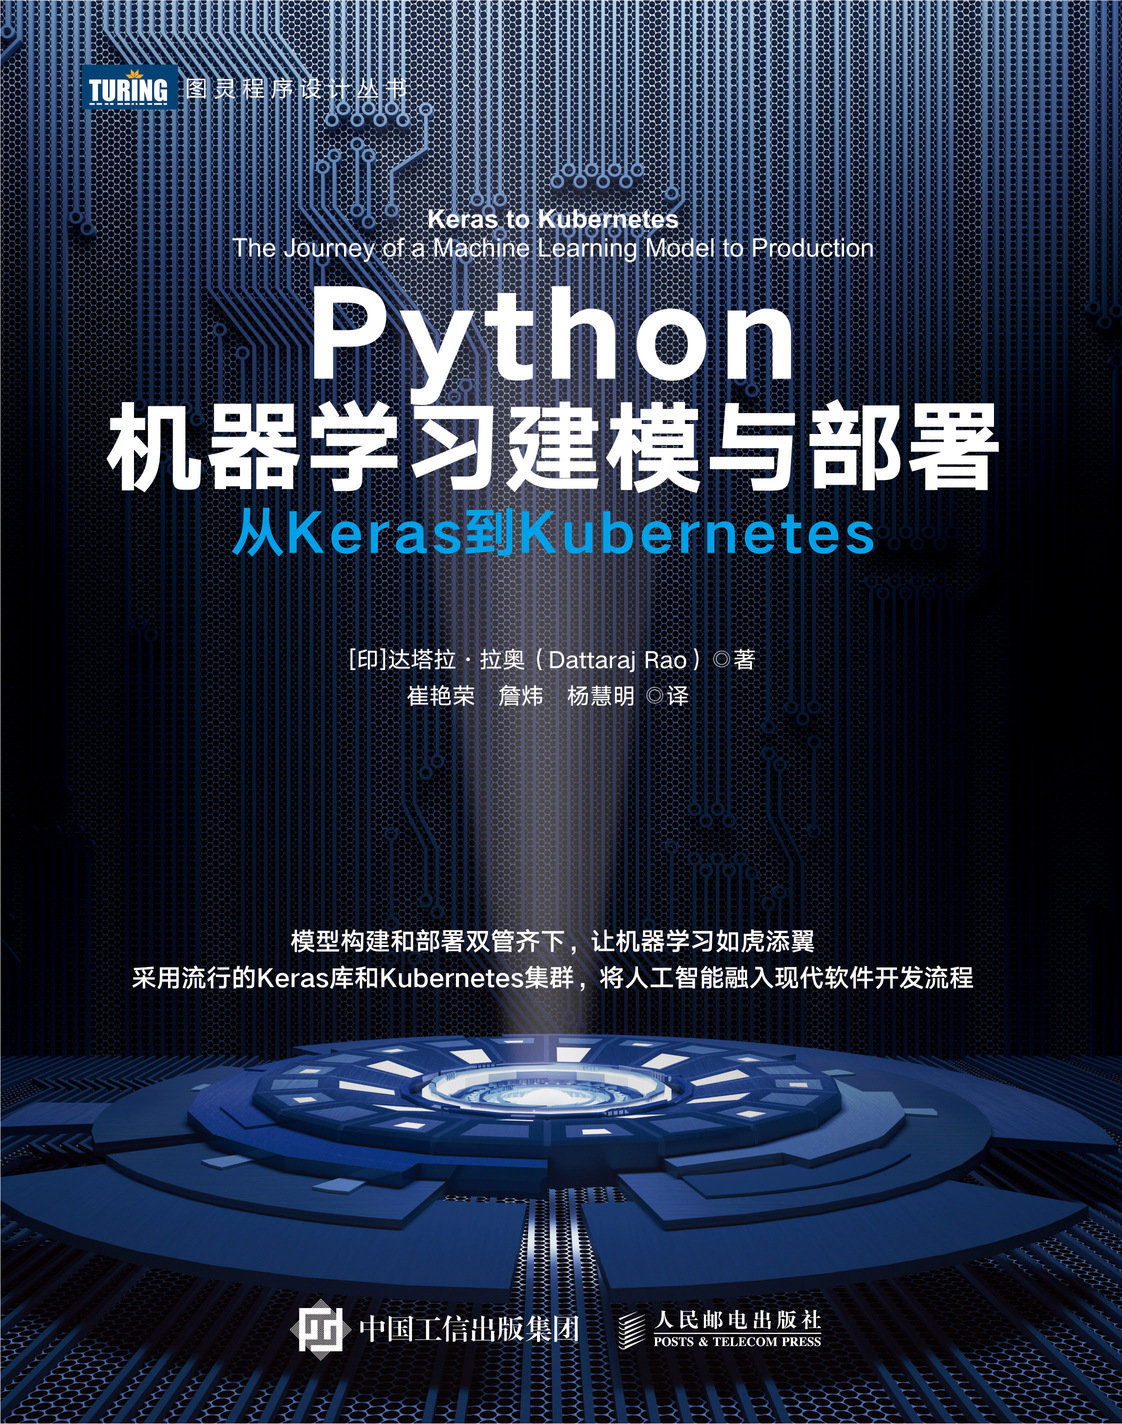 Python 機器學習建模與部署 -- 從 Keras到 Kubernetes (Keras to Kubernetes: The Journey of a Machine Learning Model to Production)-preview-1